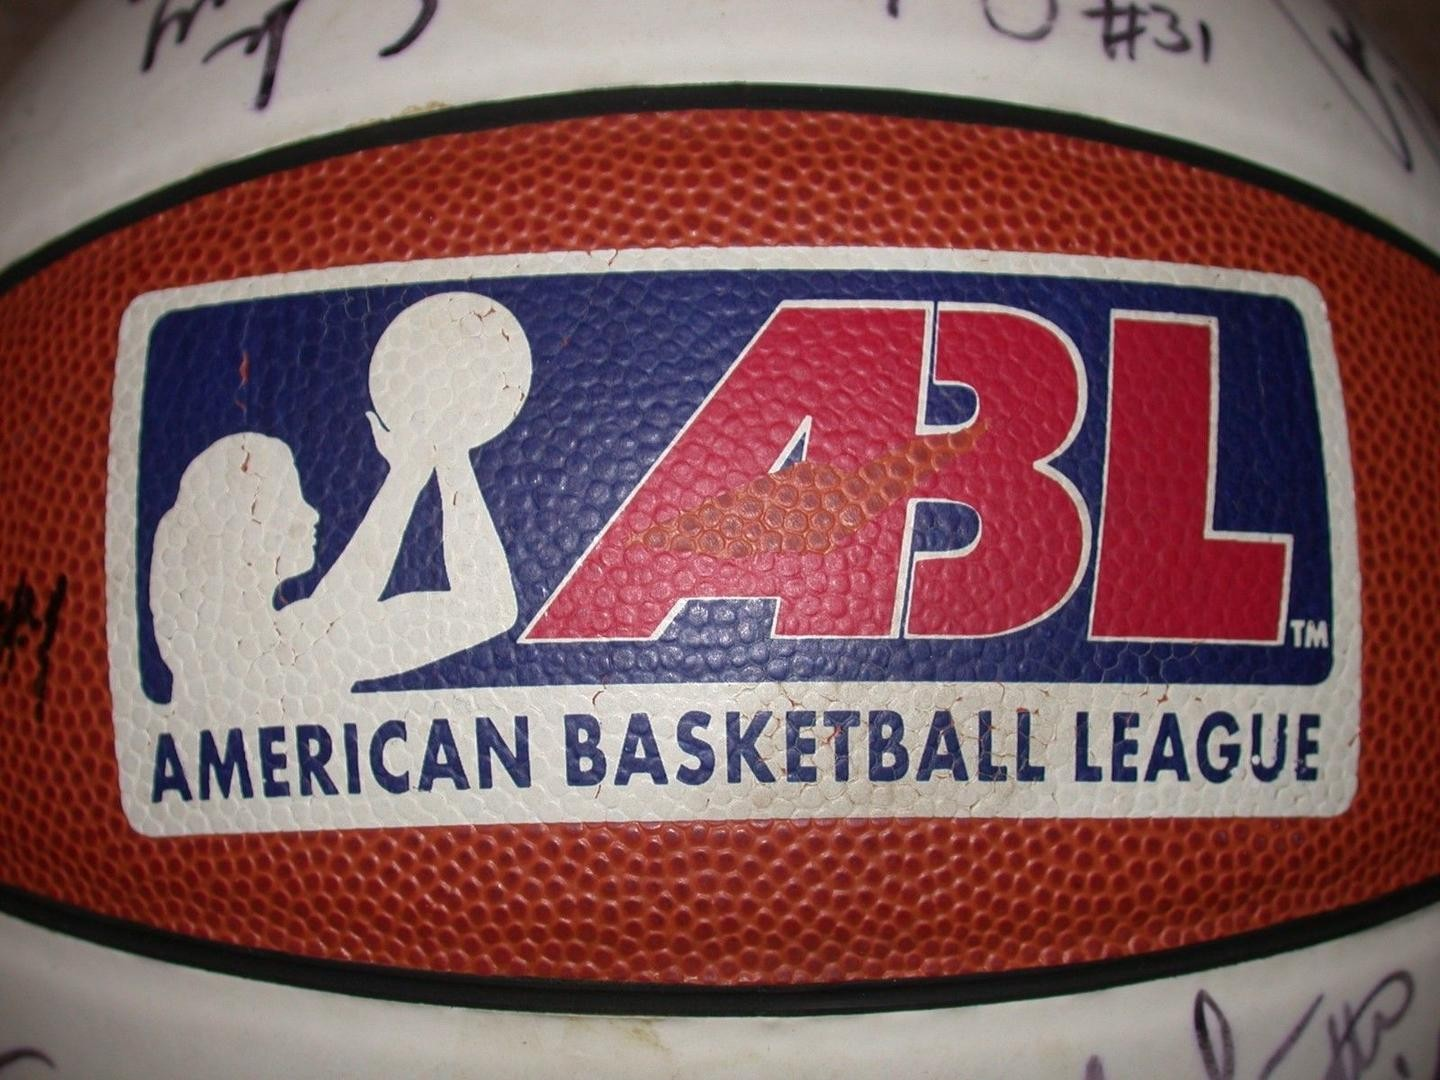 womens-american-basketball-league_1_5f42f77db1dcd2d8bf303d54170ba882.jpg